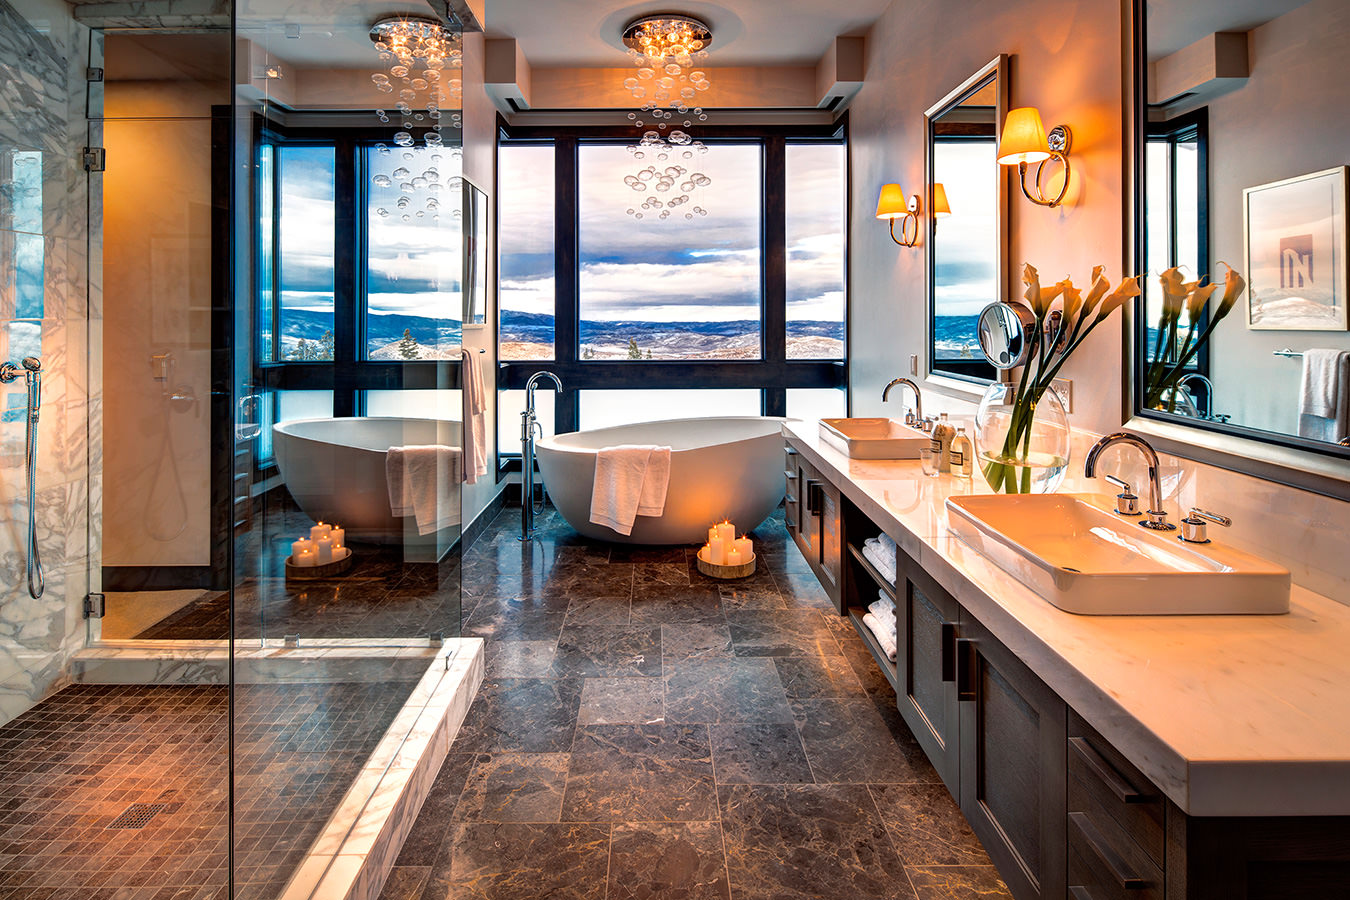 Luxury Park City vacation rental bathroom with spacious shower, tub and incredible views of Deer Valley resort